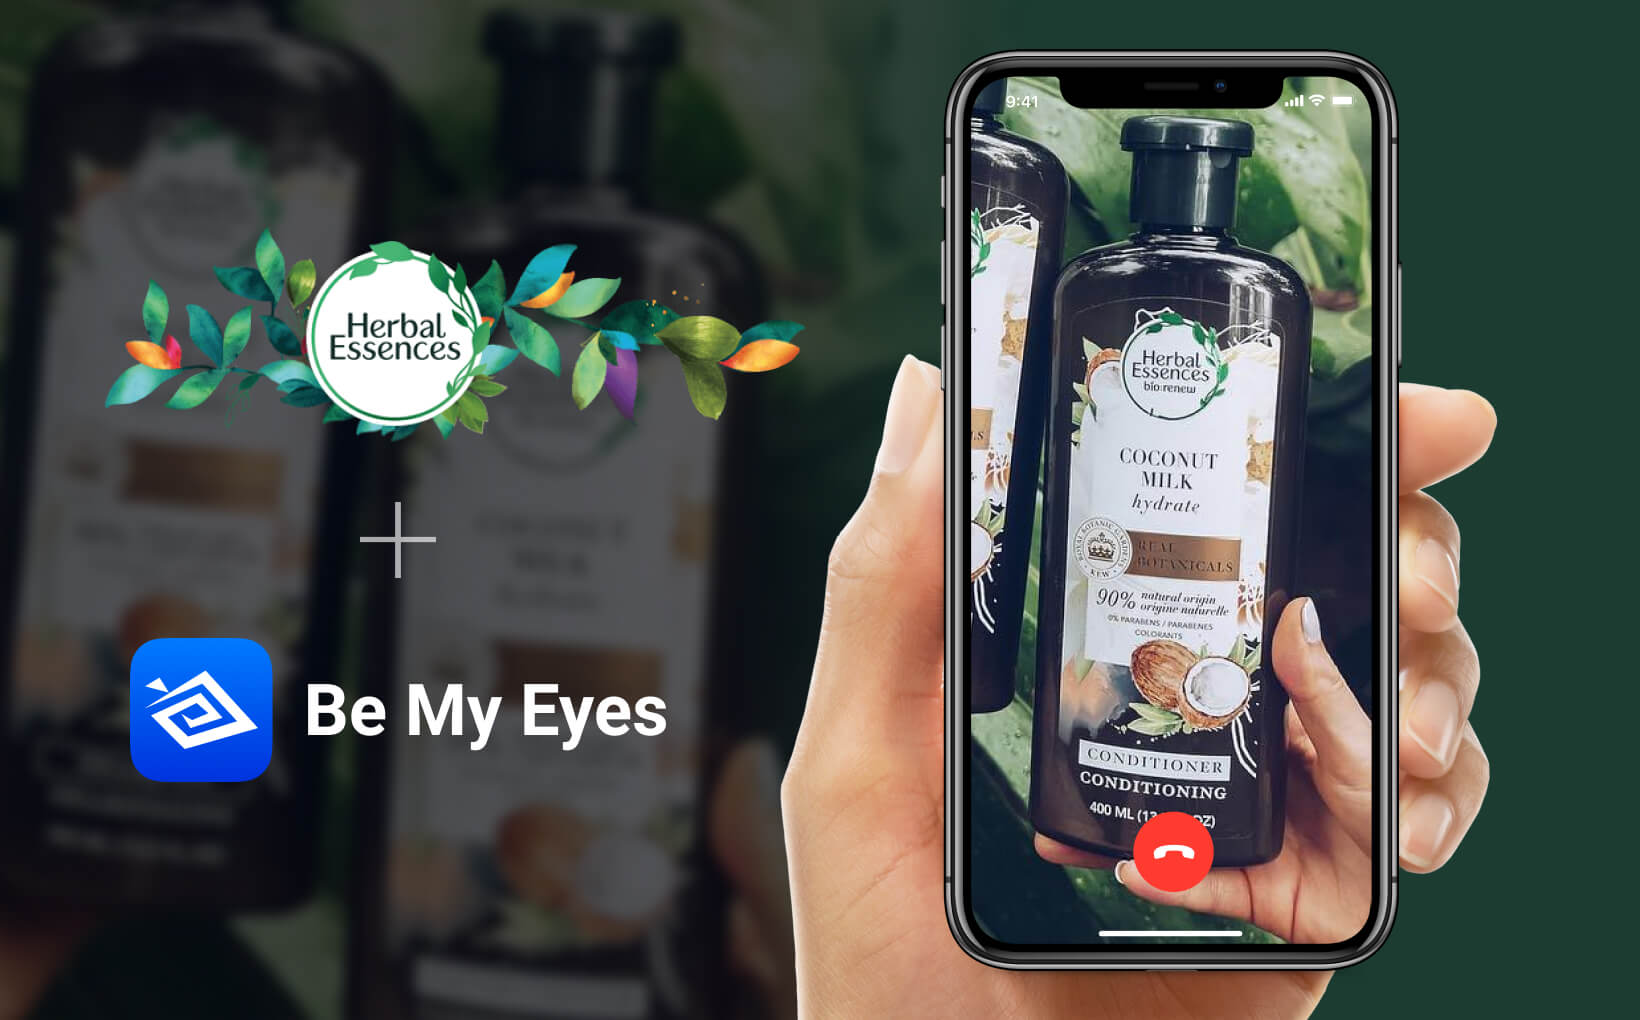 Hand golding phone. On the screen is an ongoing Be My Eyes call concerned with an Herbal Essences Coconut Milk Conditioner. The image features the logos of Herbal Essences and Be My Eyes.